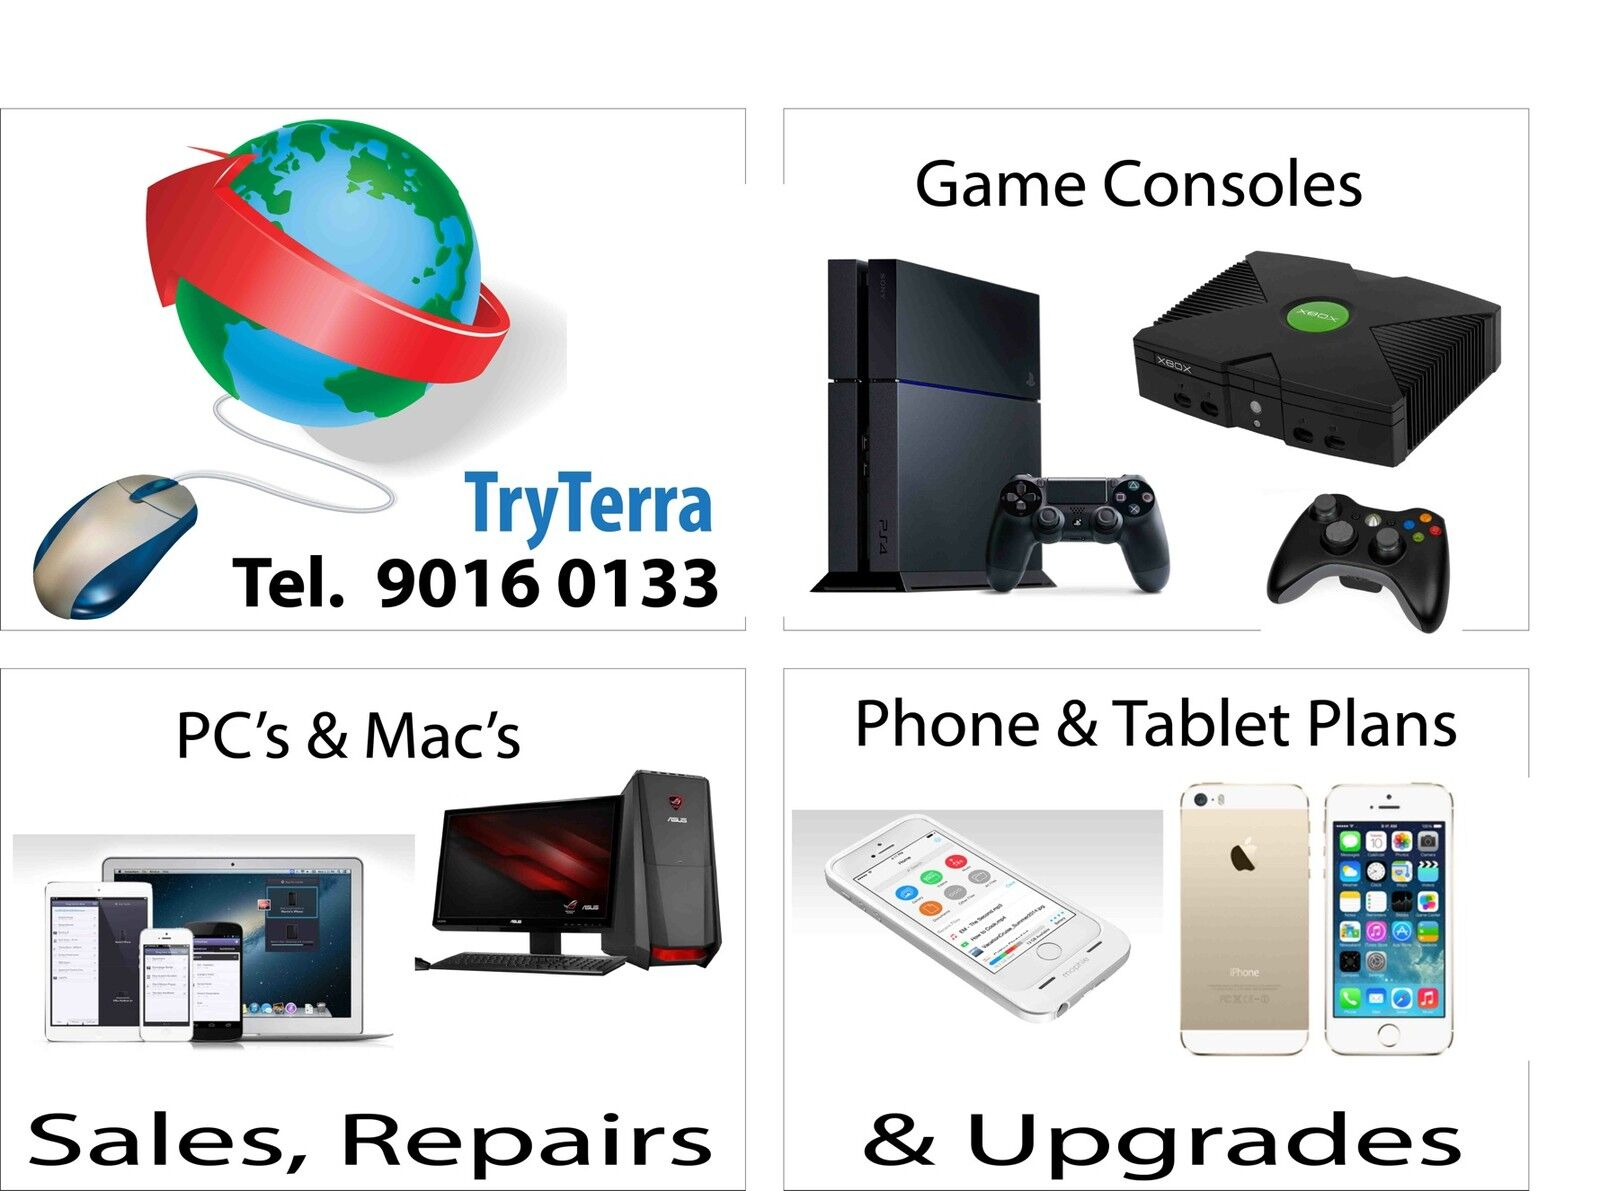 TryTerra Computer Systems